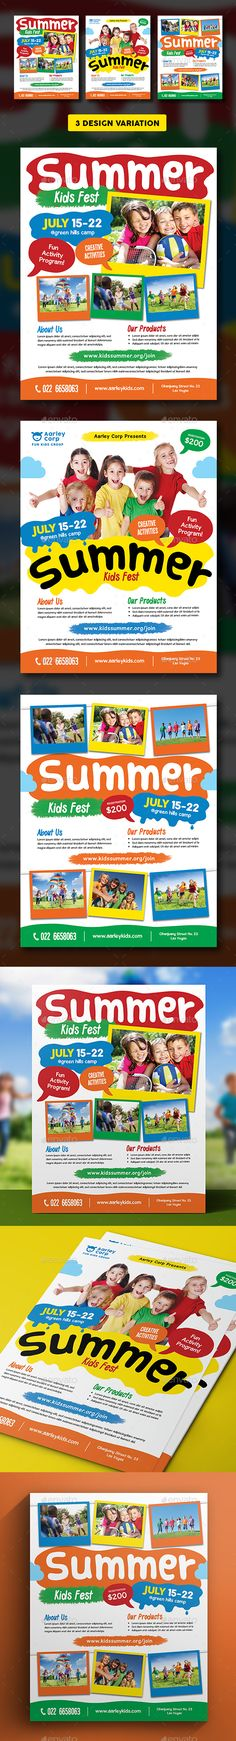 35+ Best Kids #Summer #Camp Flyer Print Templates 2016 Http://Www